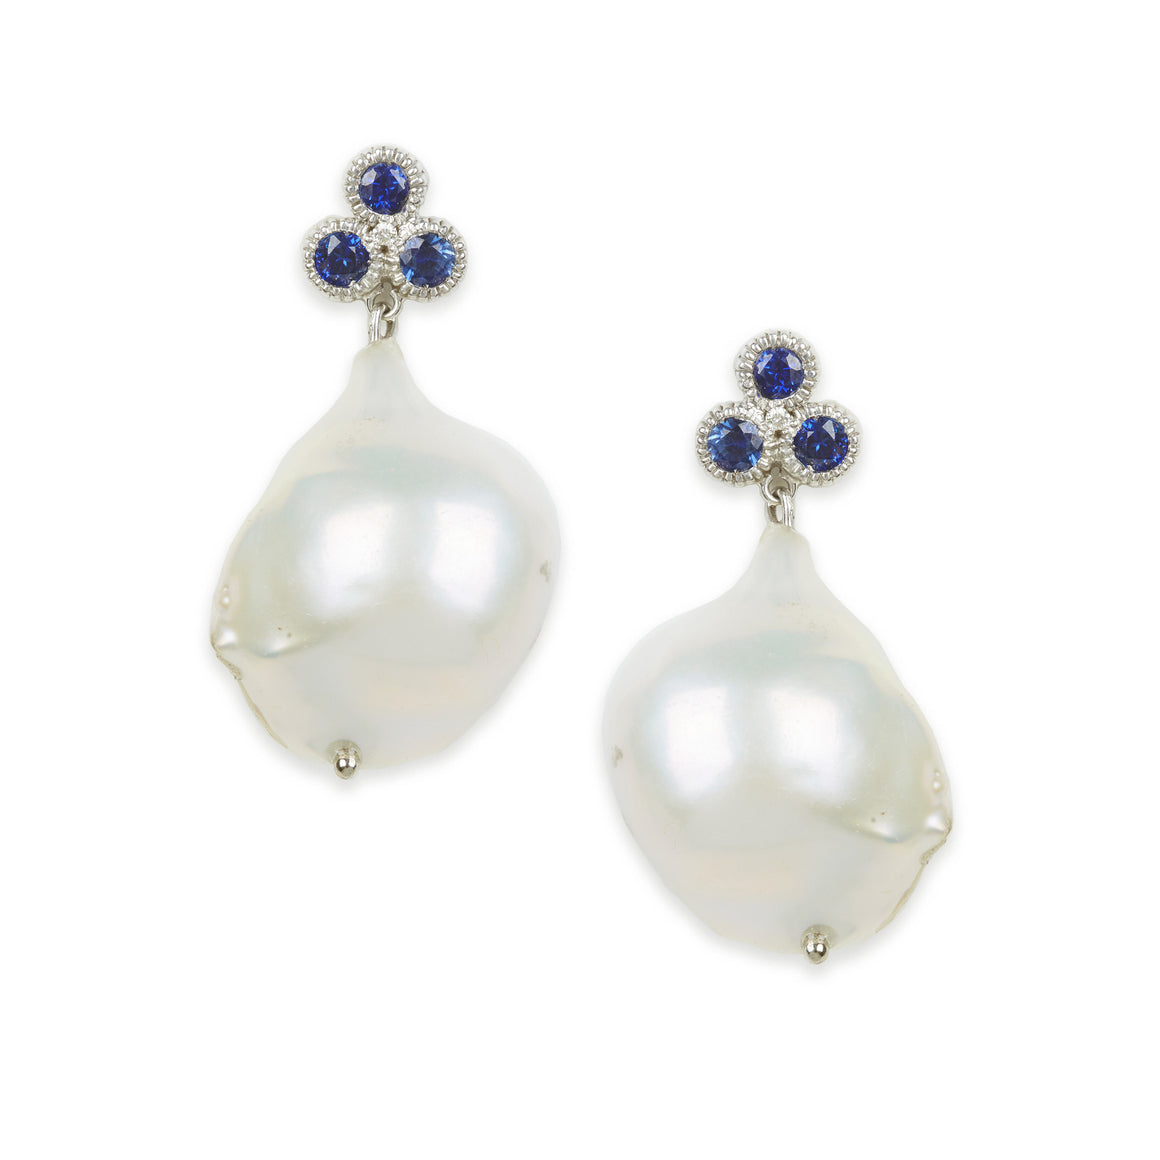 NIRVANA SAPPHIRE PEARL EARRINGS